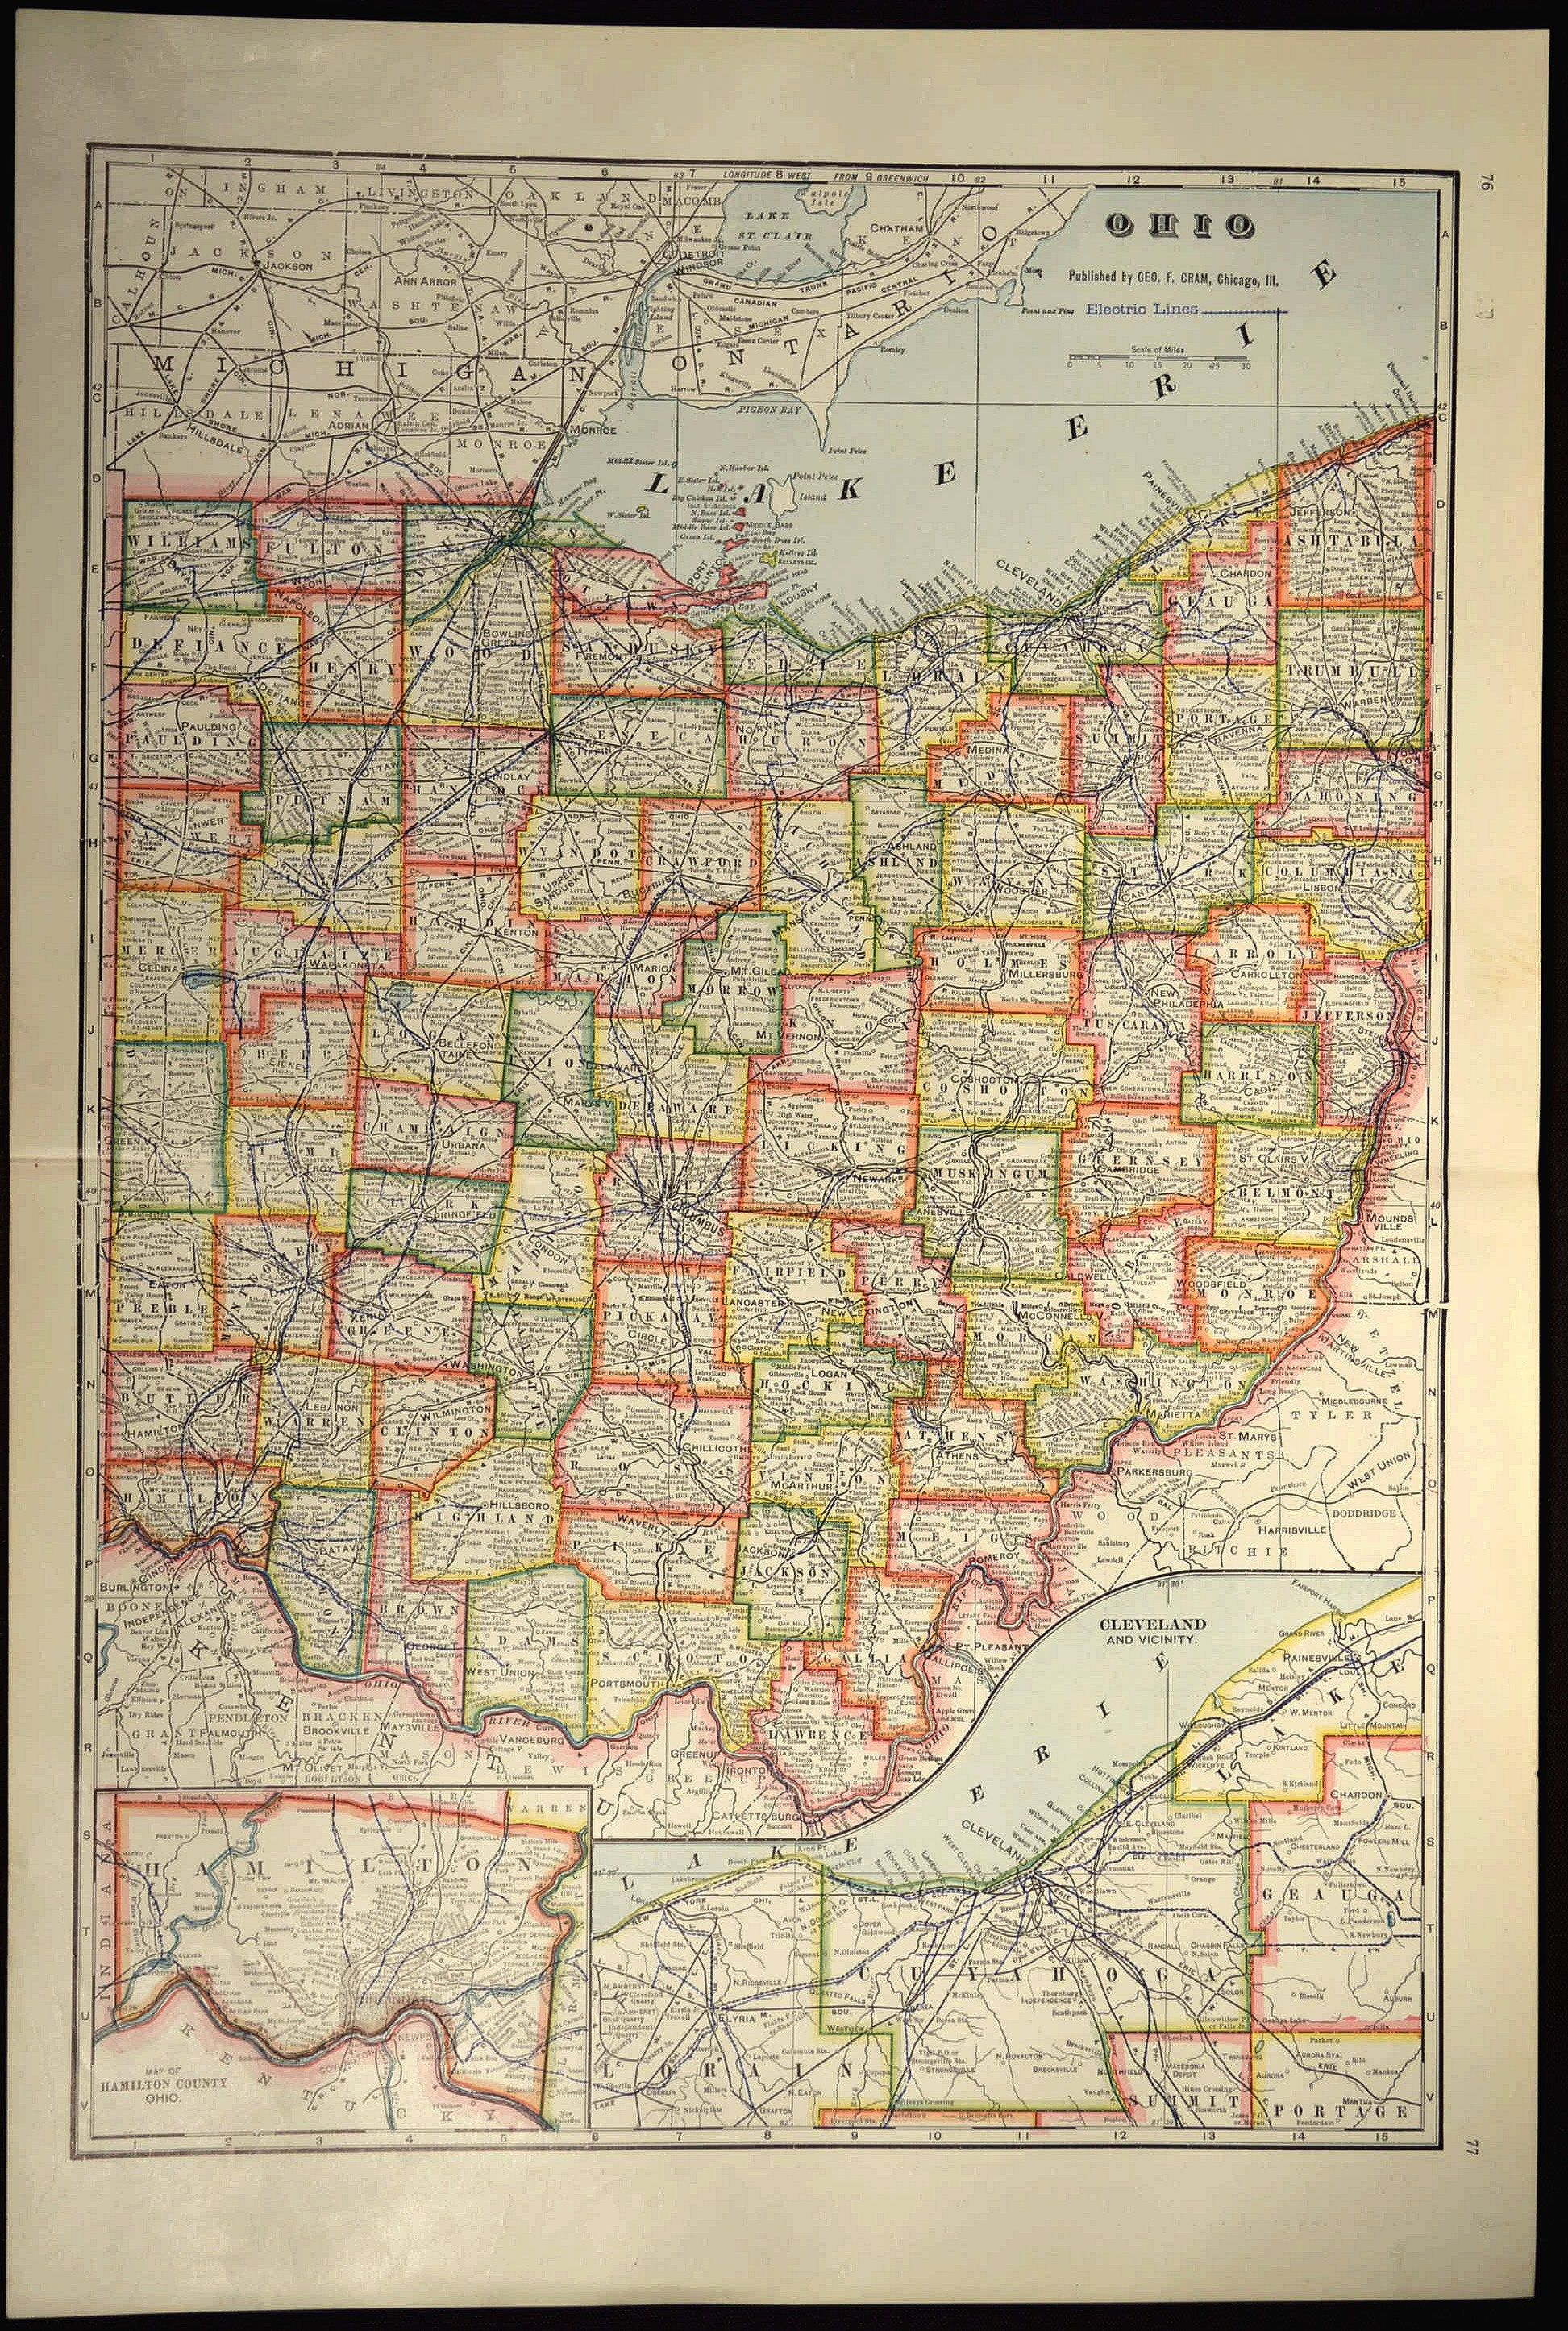 Ohio County Map Ohio Large Antique Colorful Map Wall Decor